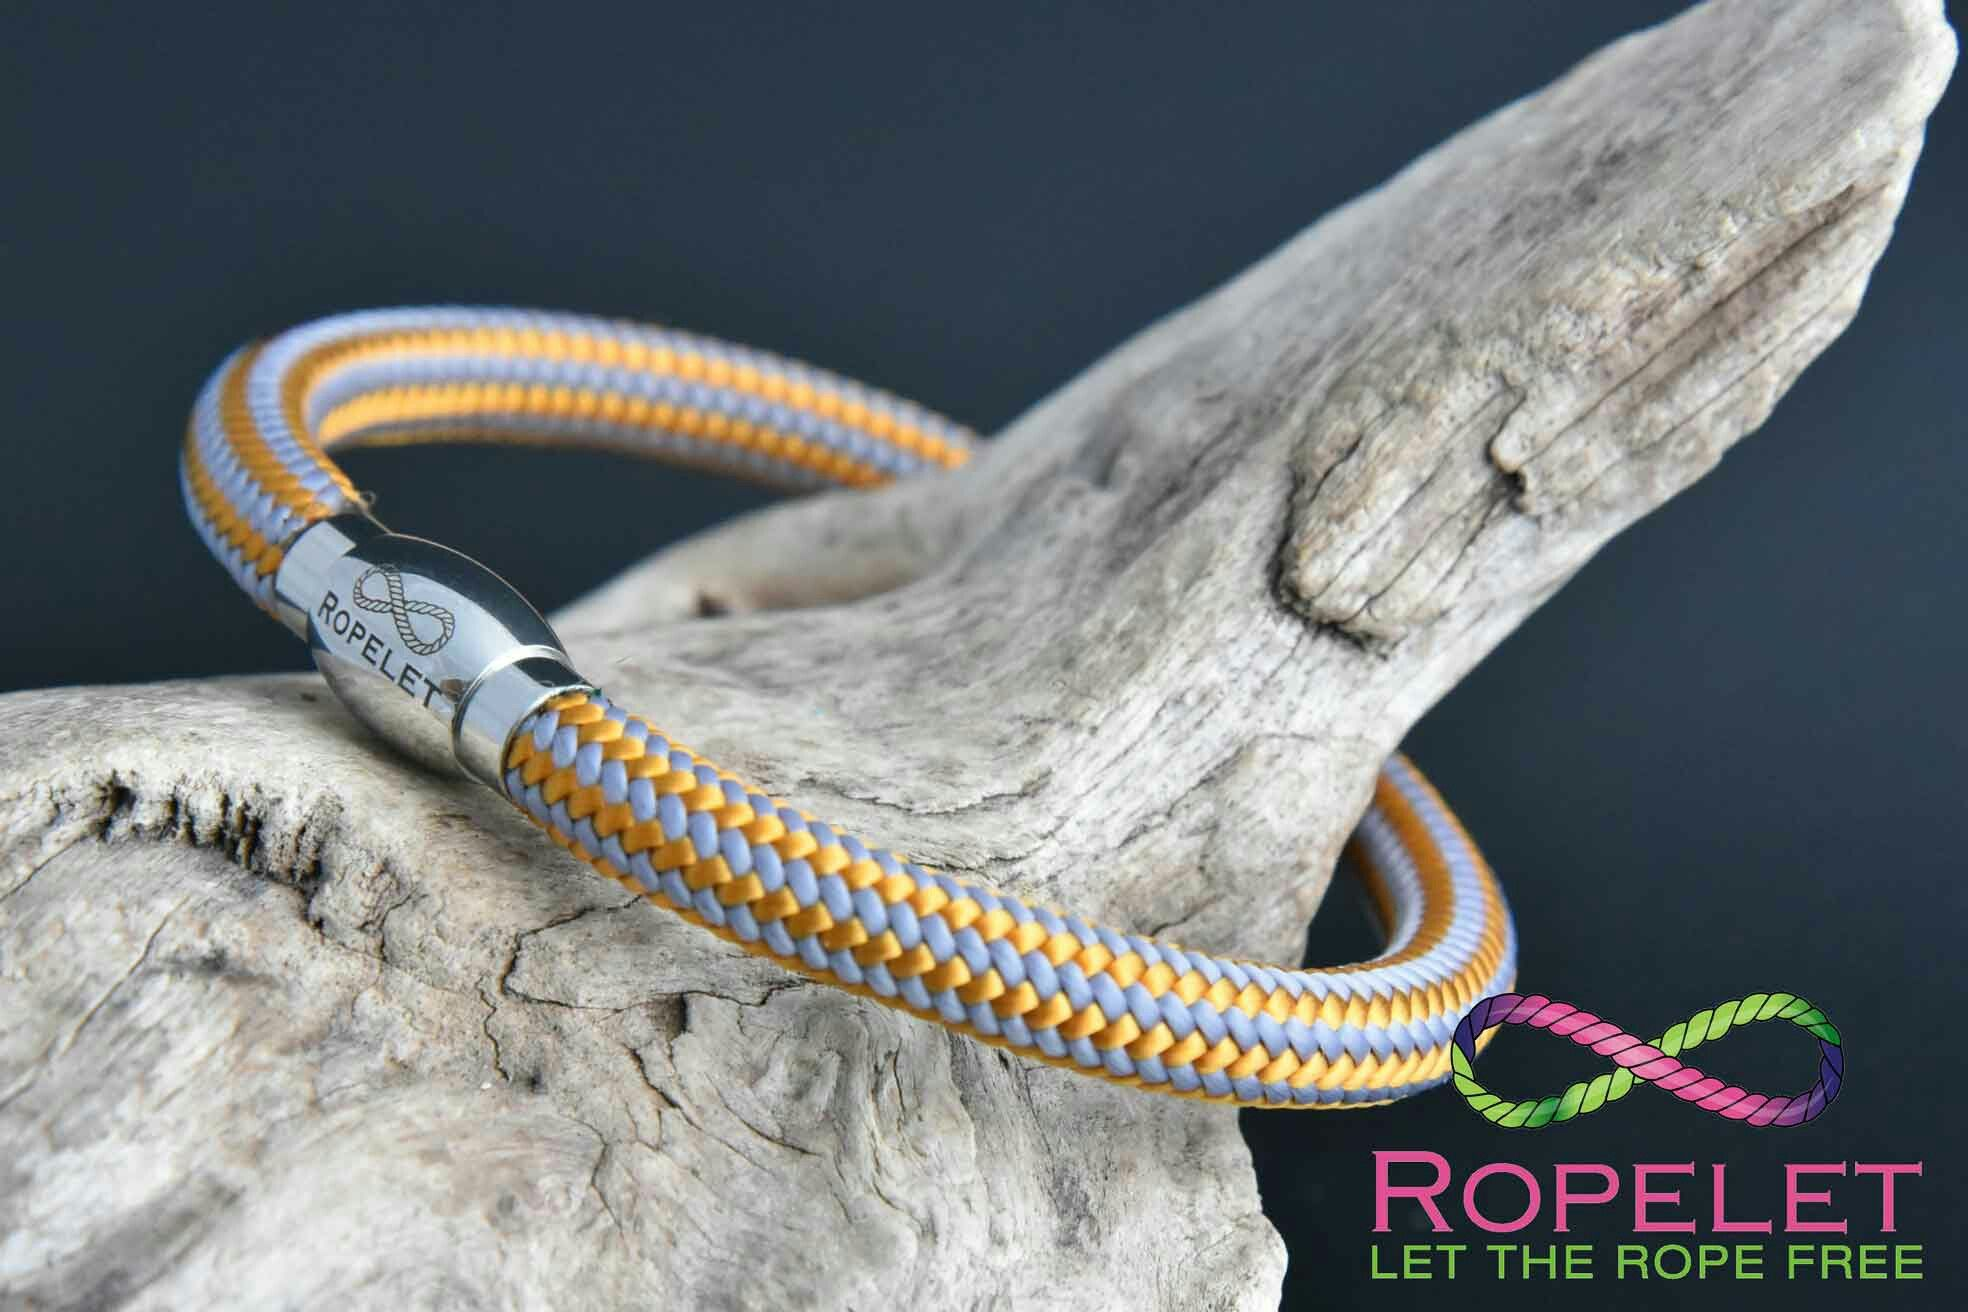 This stunning orange and silver Ropelet can be made any size for your wrist at www.ropelet.co.uk.  Just one of our stunning rope and leather bracelets available in our online shop and made to your order.  Come and check them out today, great value and service await you with a choice second to none. #ladiesbracelet #fashionbracelet #fashionaccessories #handmadegift #mensbracelet #mensfashion #menstyle #menswear #ropelet #ropebracelet #bracelet #leatherbracelet #climbingbracelet…